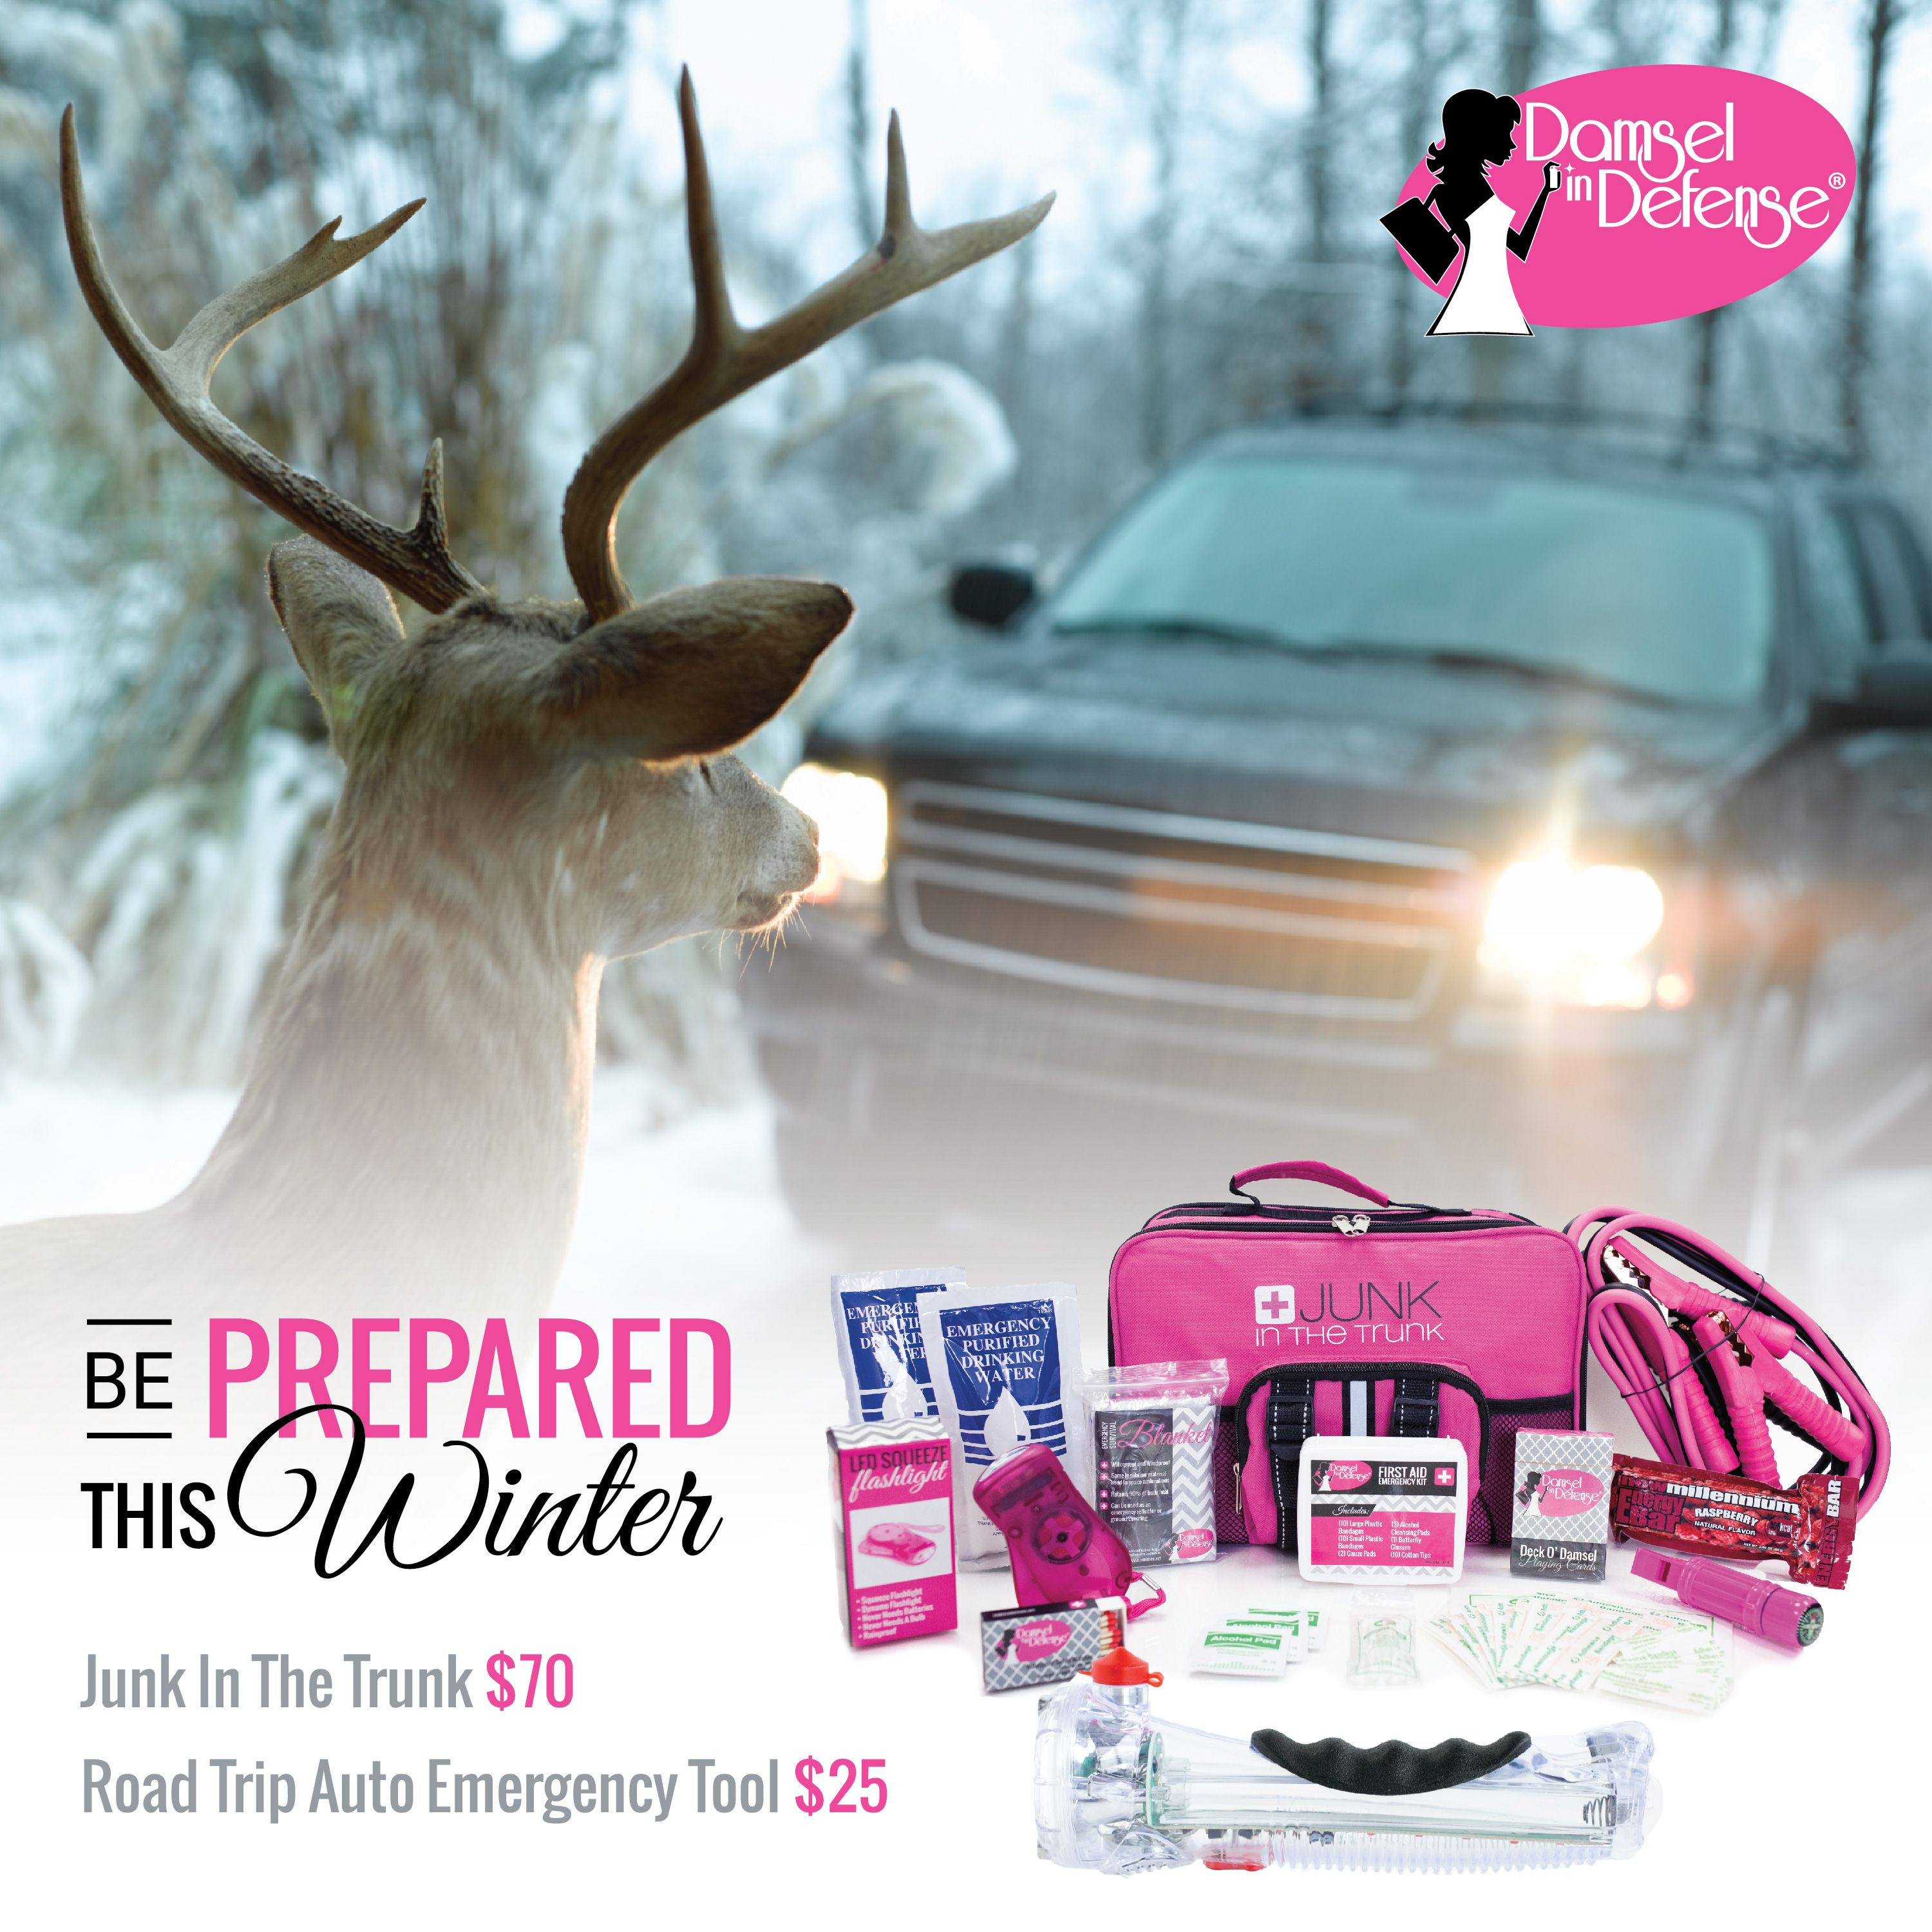 Be prepared this winter with Junk in the Trunk.